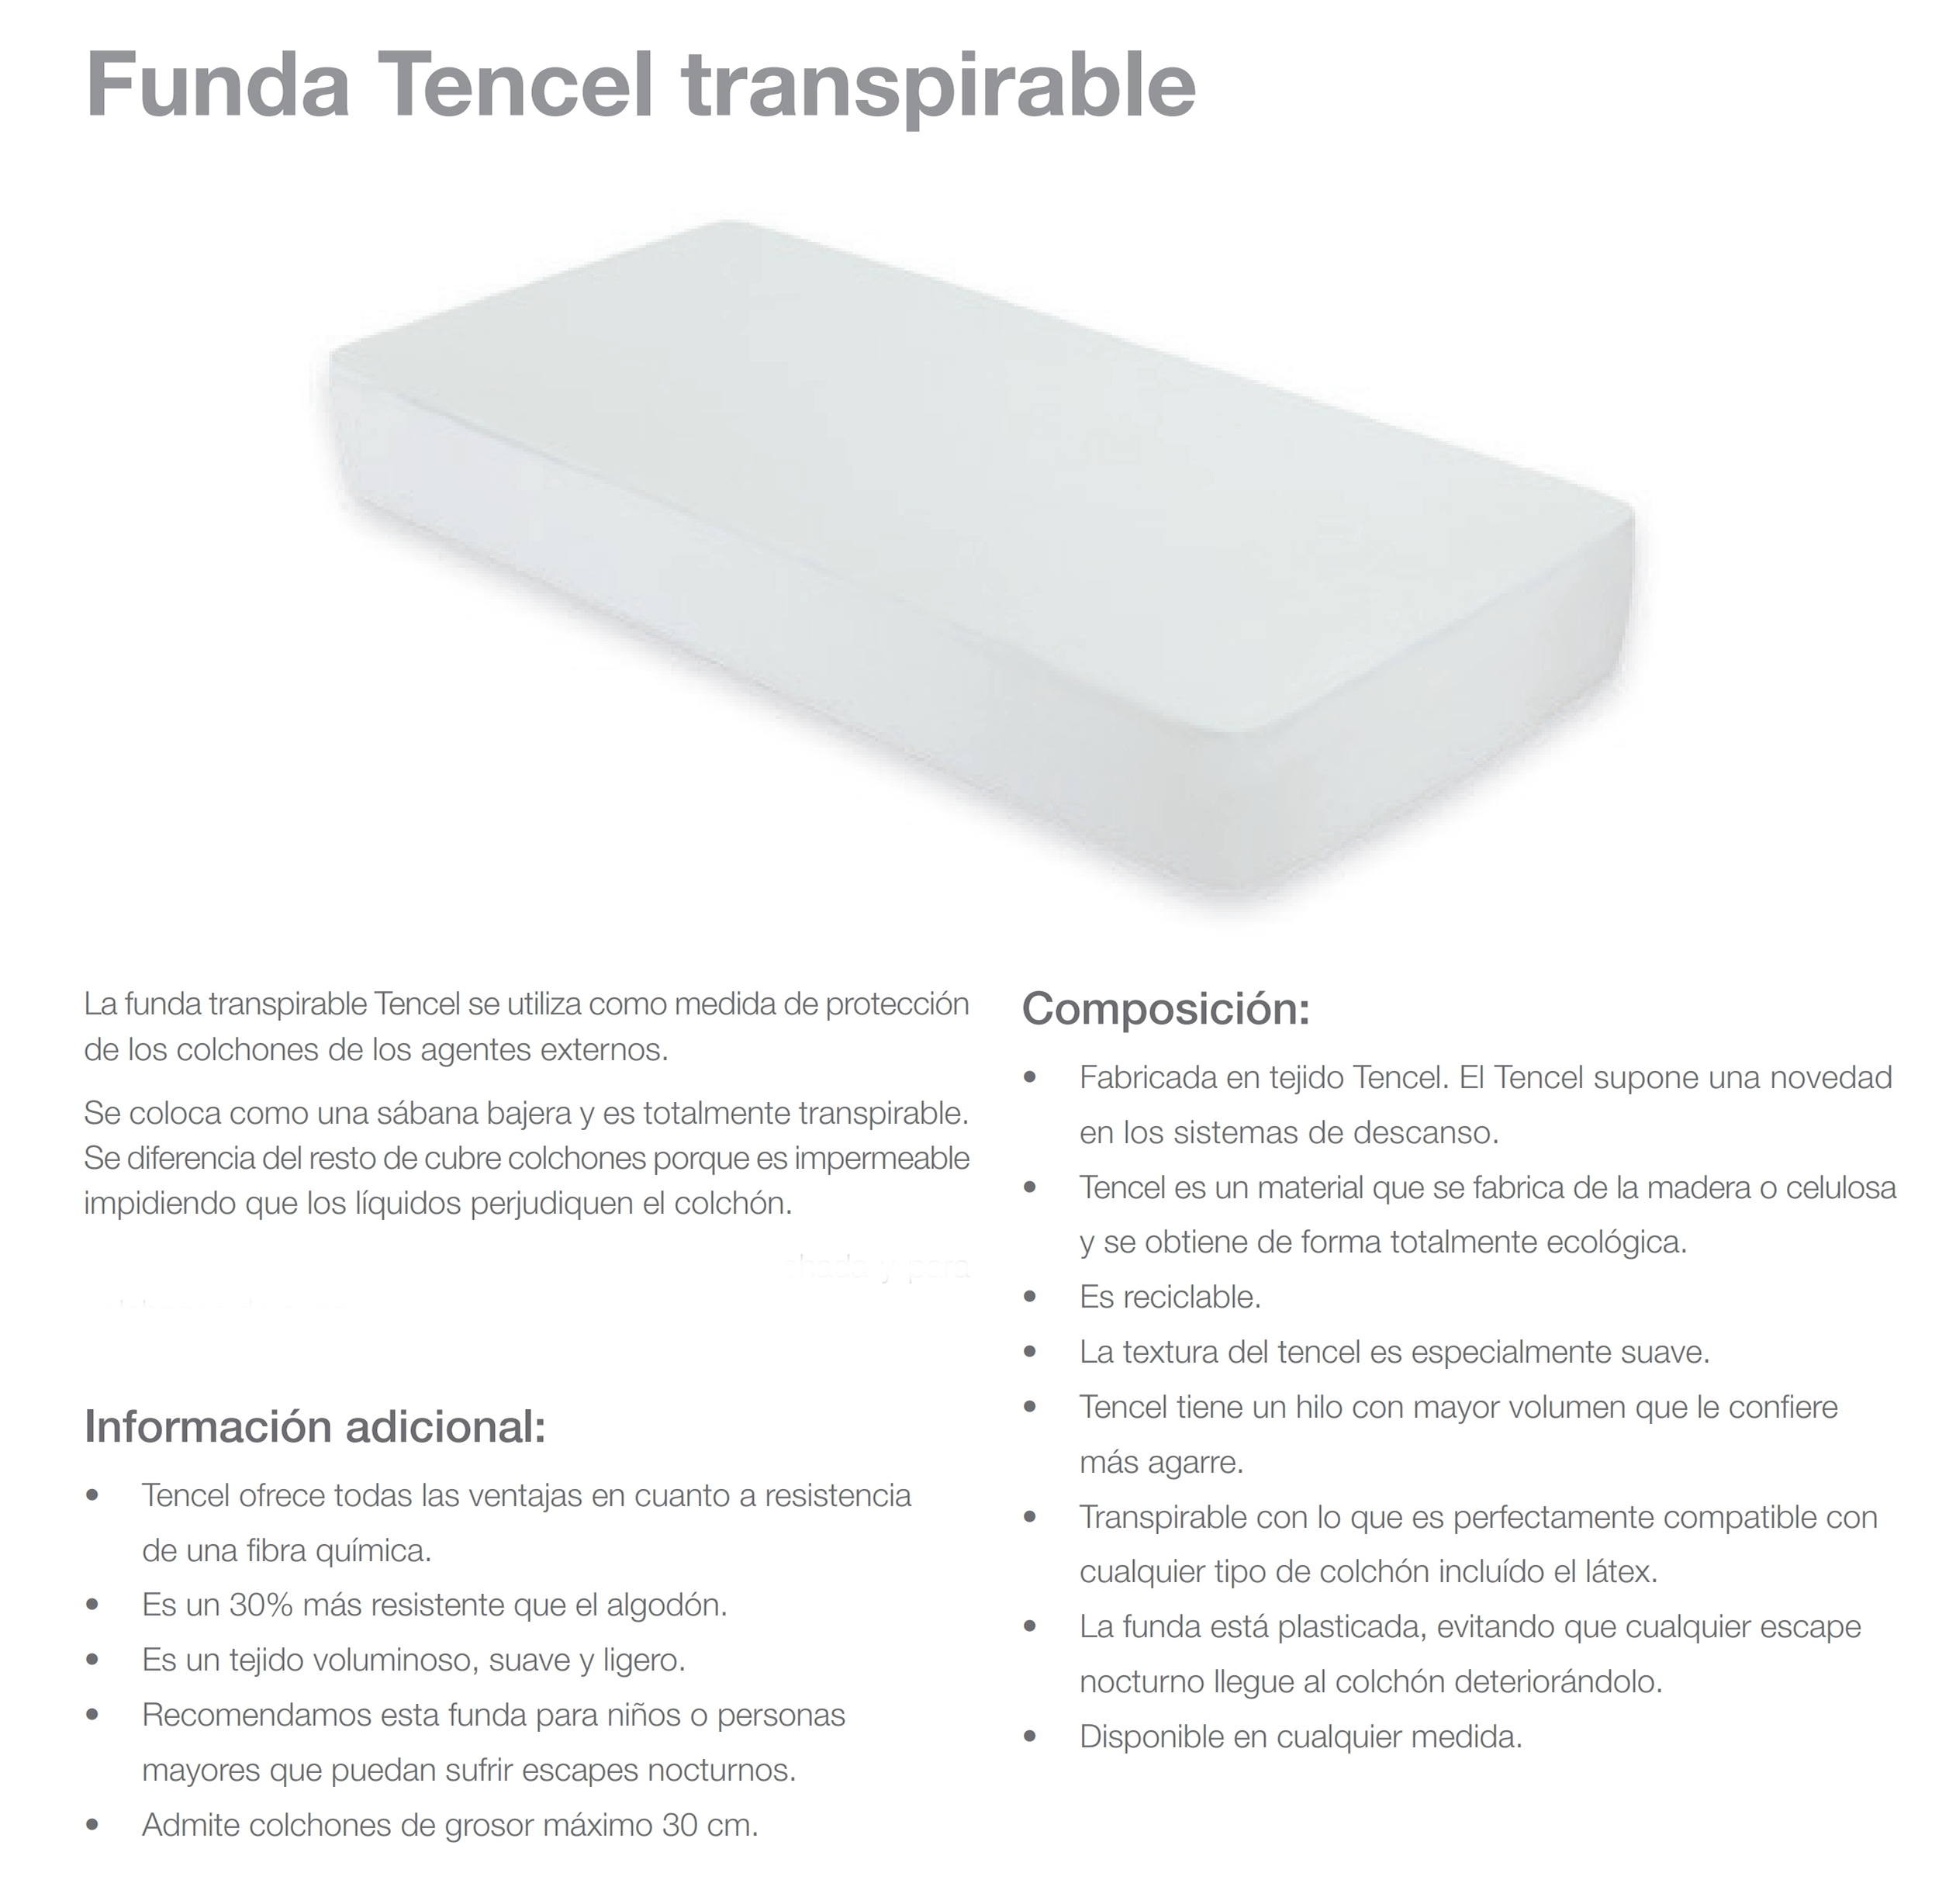 Funda Tencel Transpirable